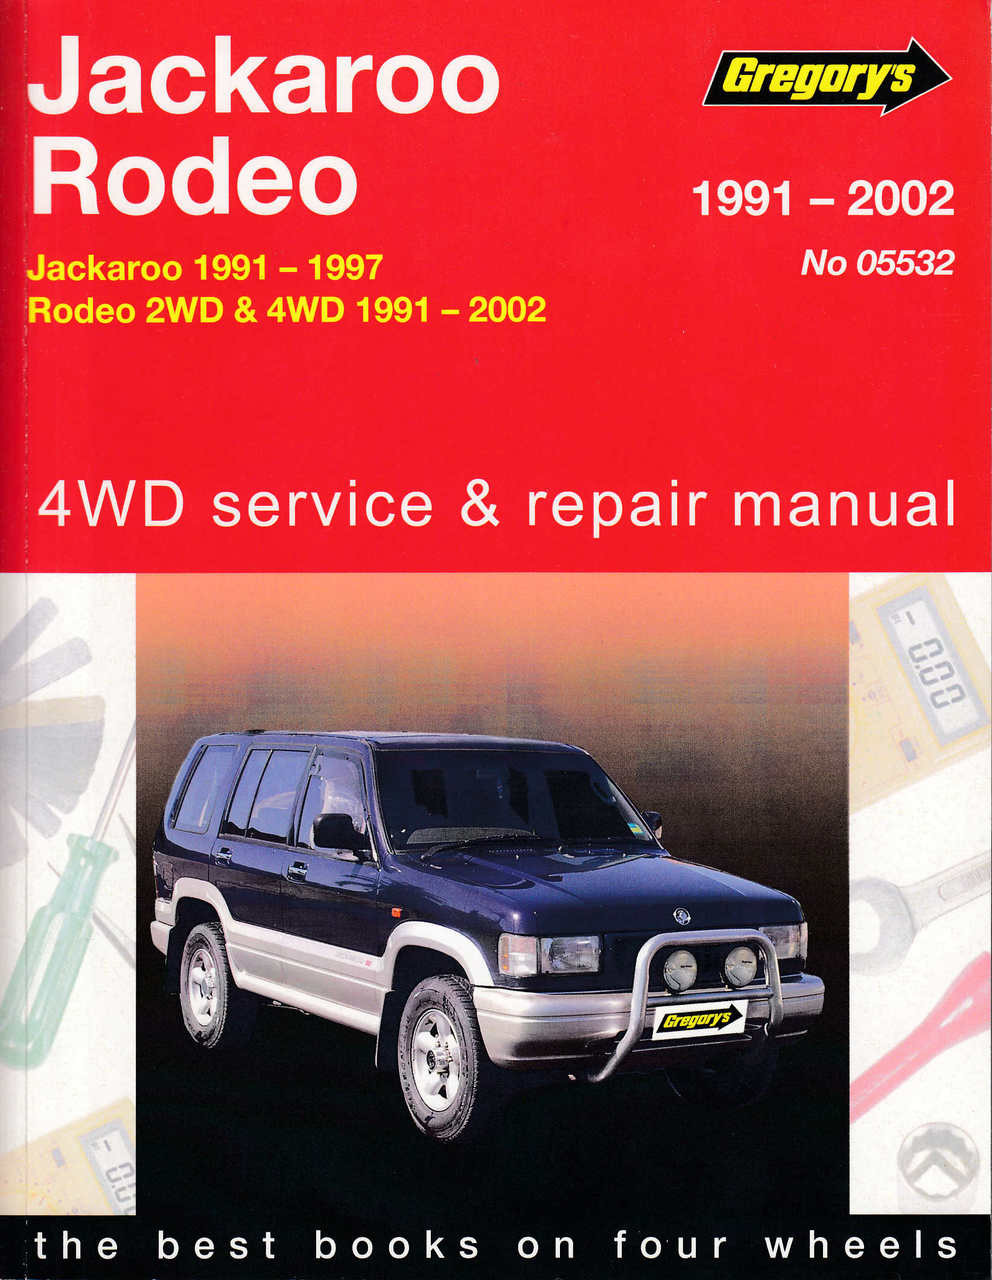 holden jackaroo and holden rodeo 1991 2002 workshop manual rh automotobookshop com au Holden Rodeo 2002 Holden Rodeo 4x4